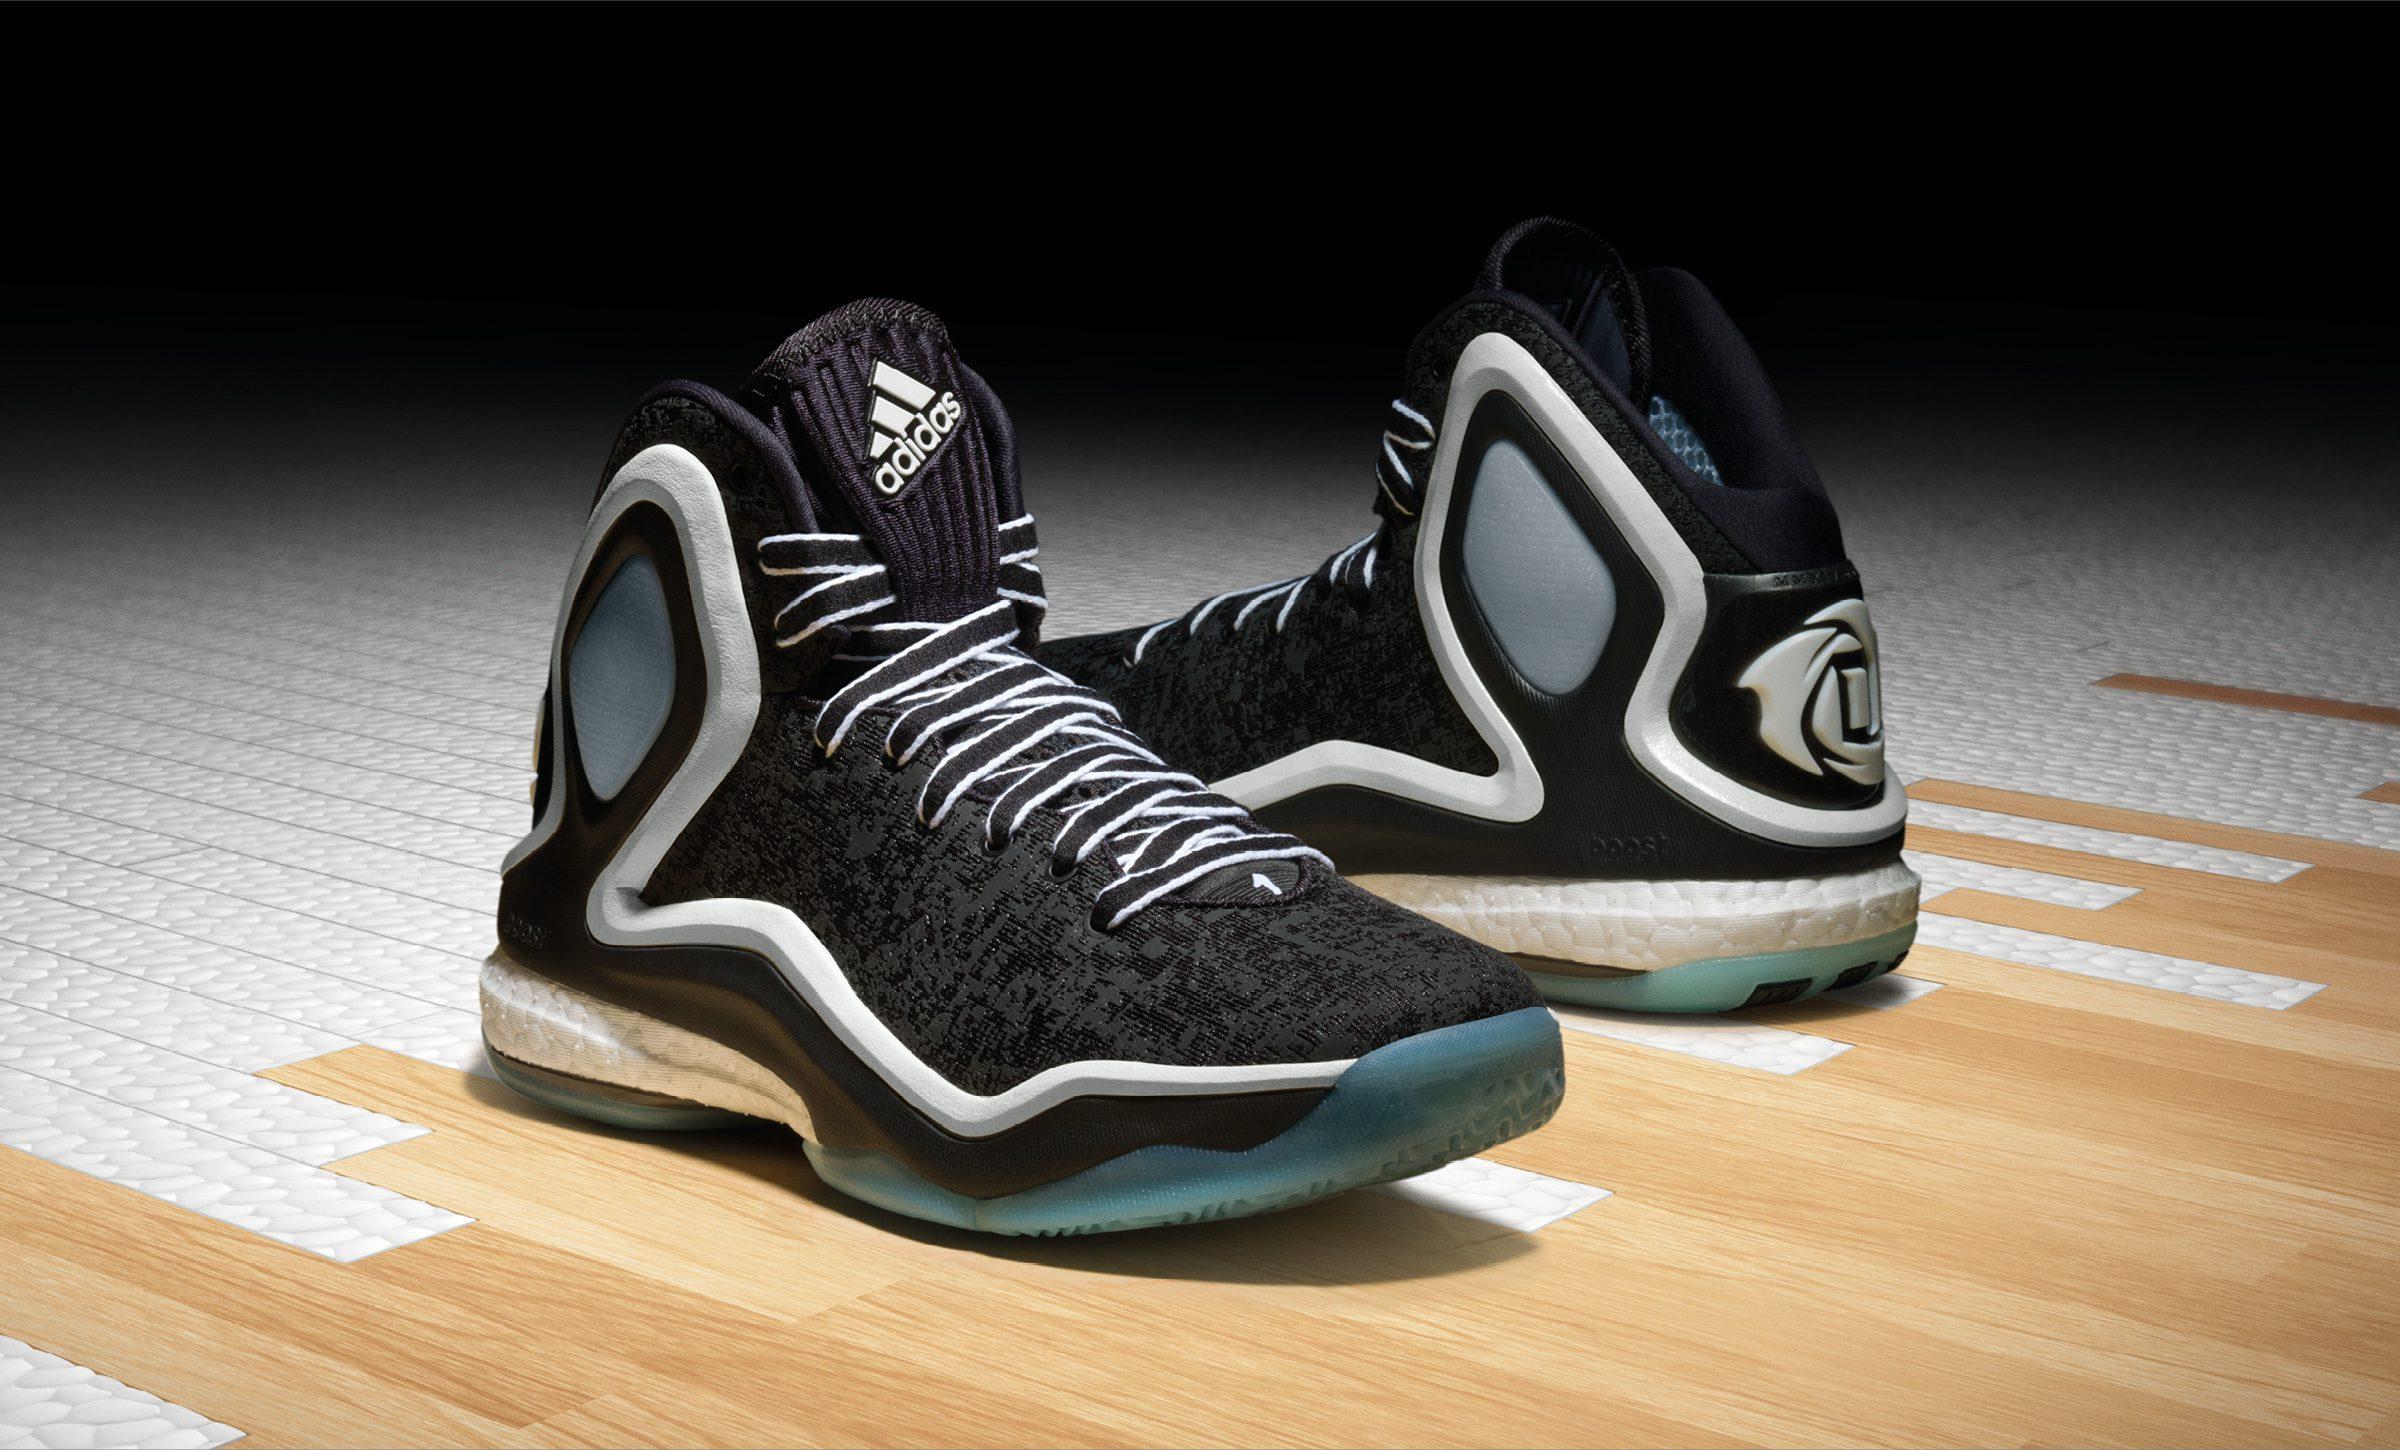 adidas D Rose 5 Boost Chicago Ice, C76546, 1